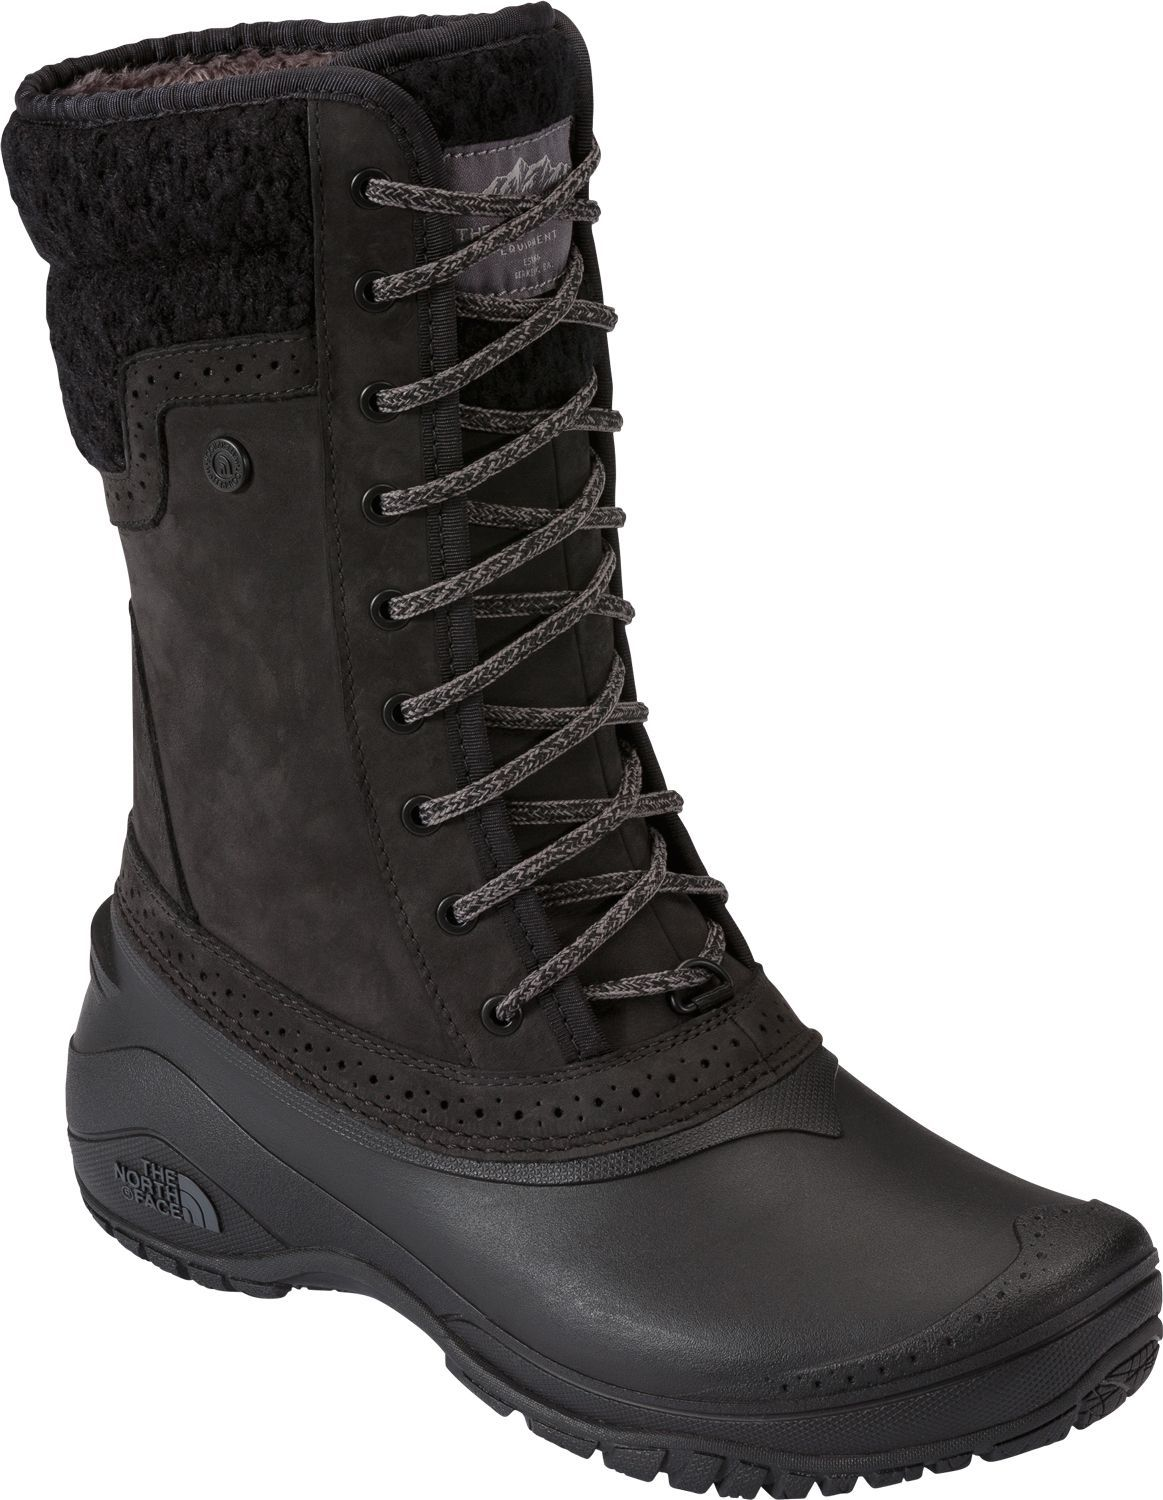 2e24eb8cbe6 The North Face Women s Shellista II Mid 200g Waterproof Winter Boots ...